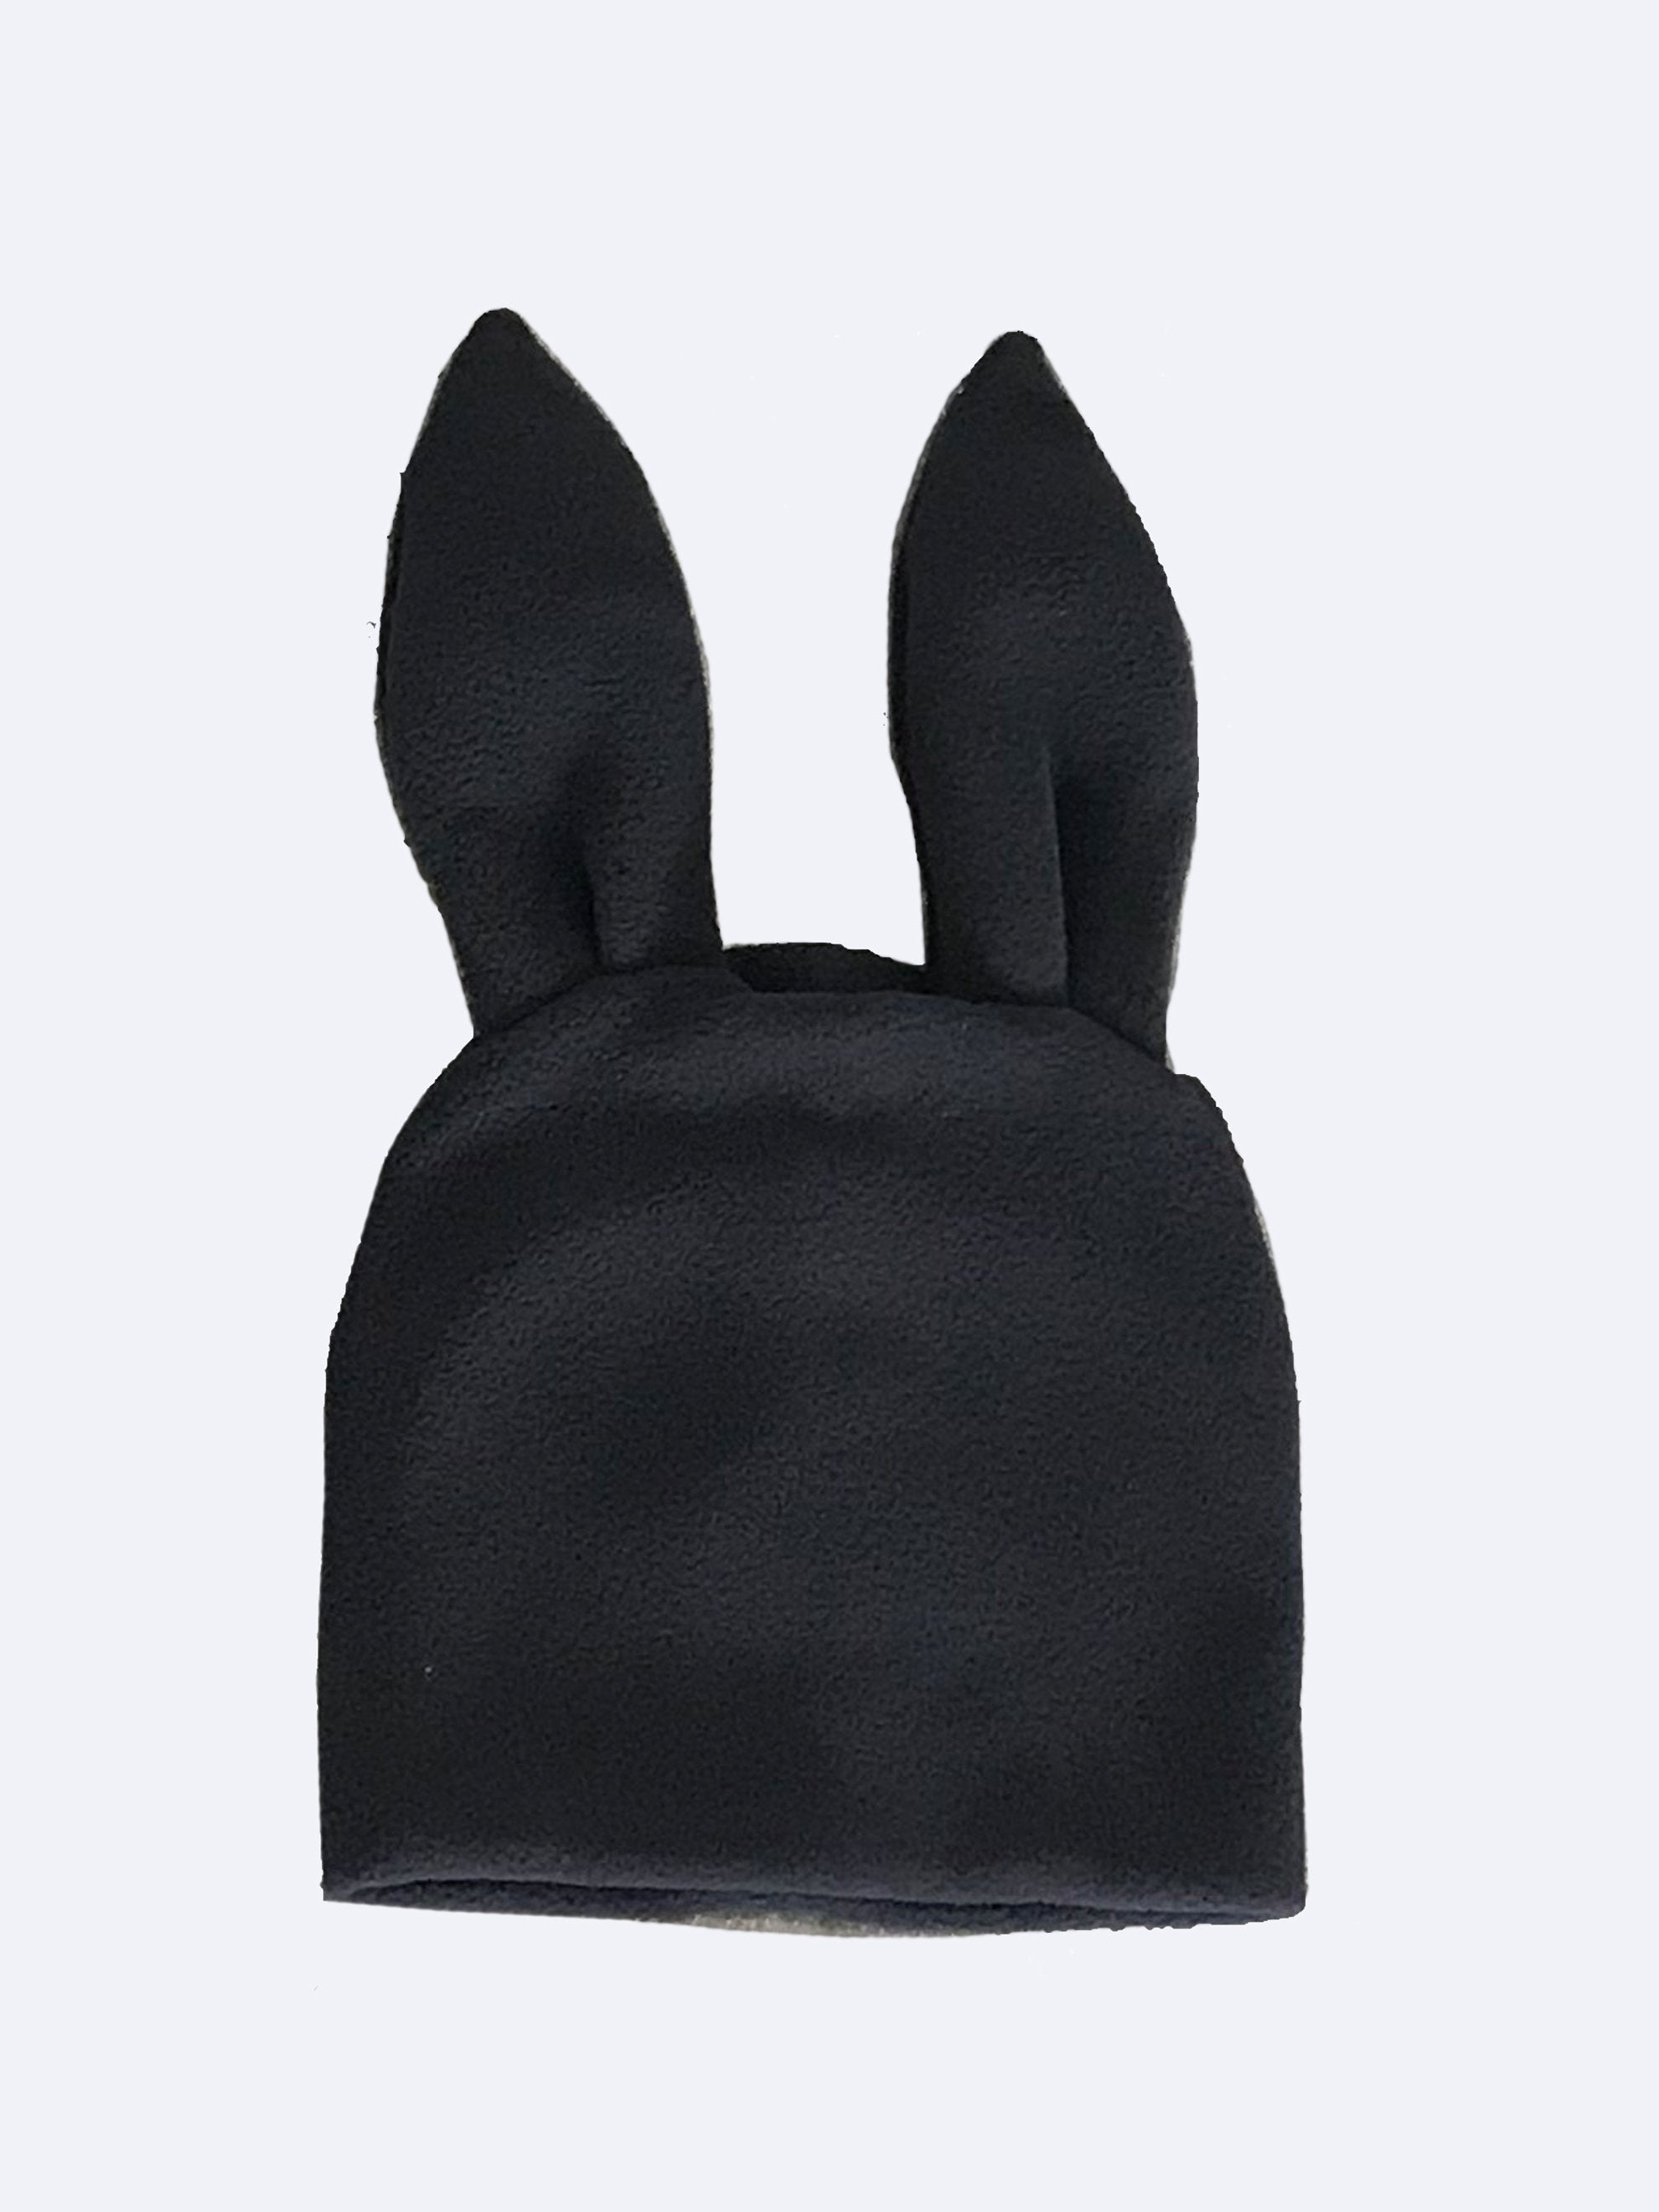 Red Bunny Ears Woven Beanie 7